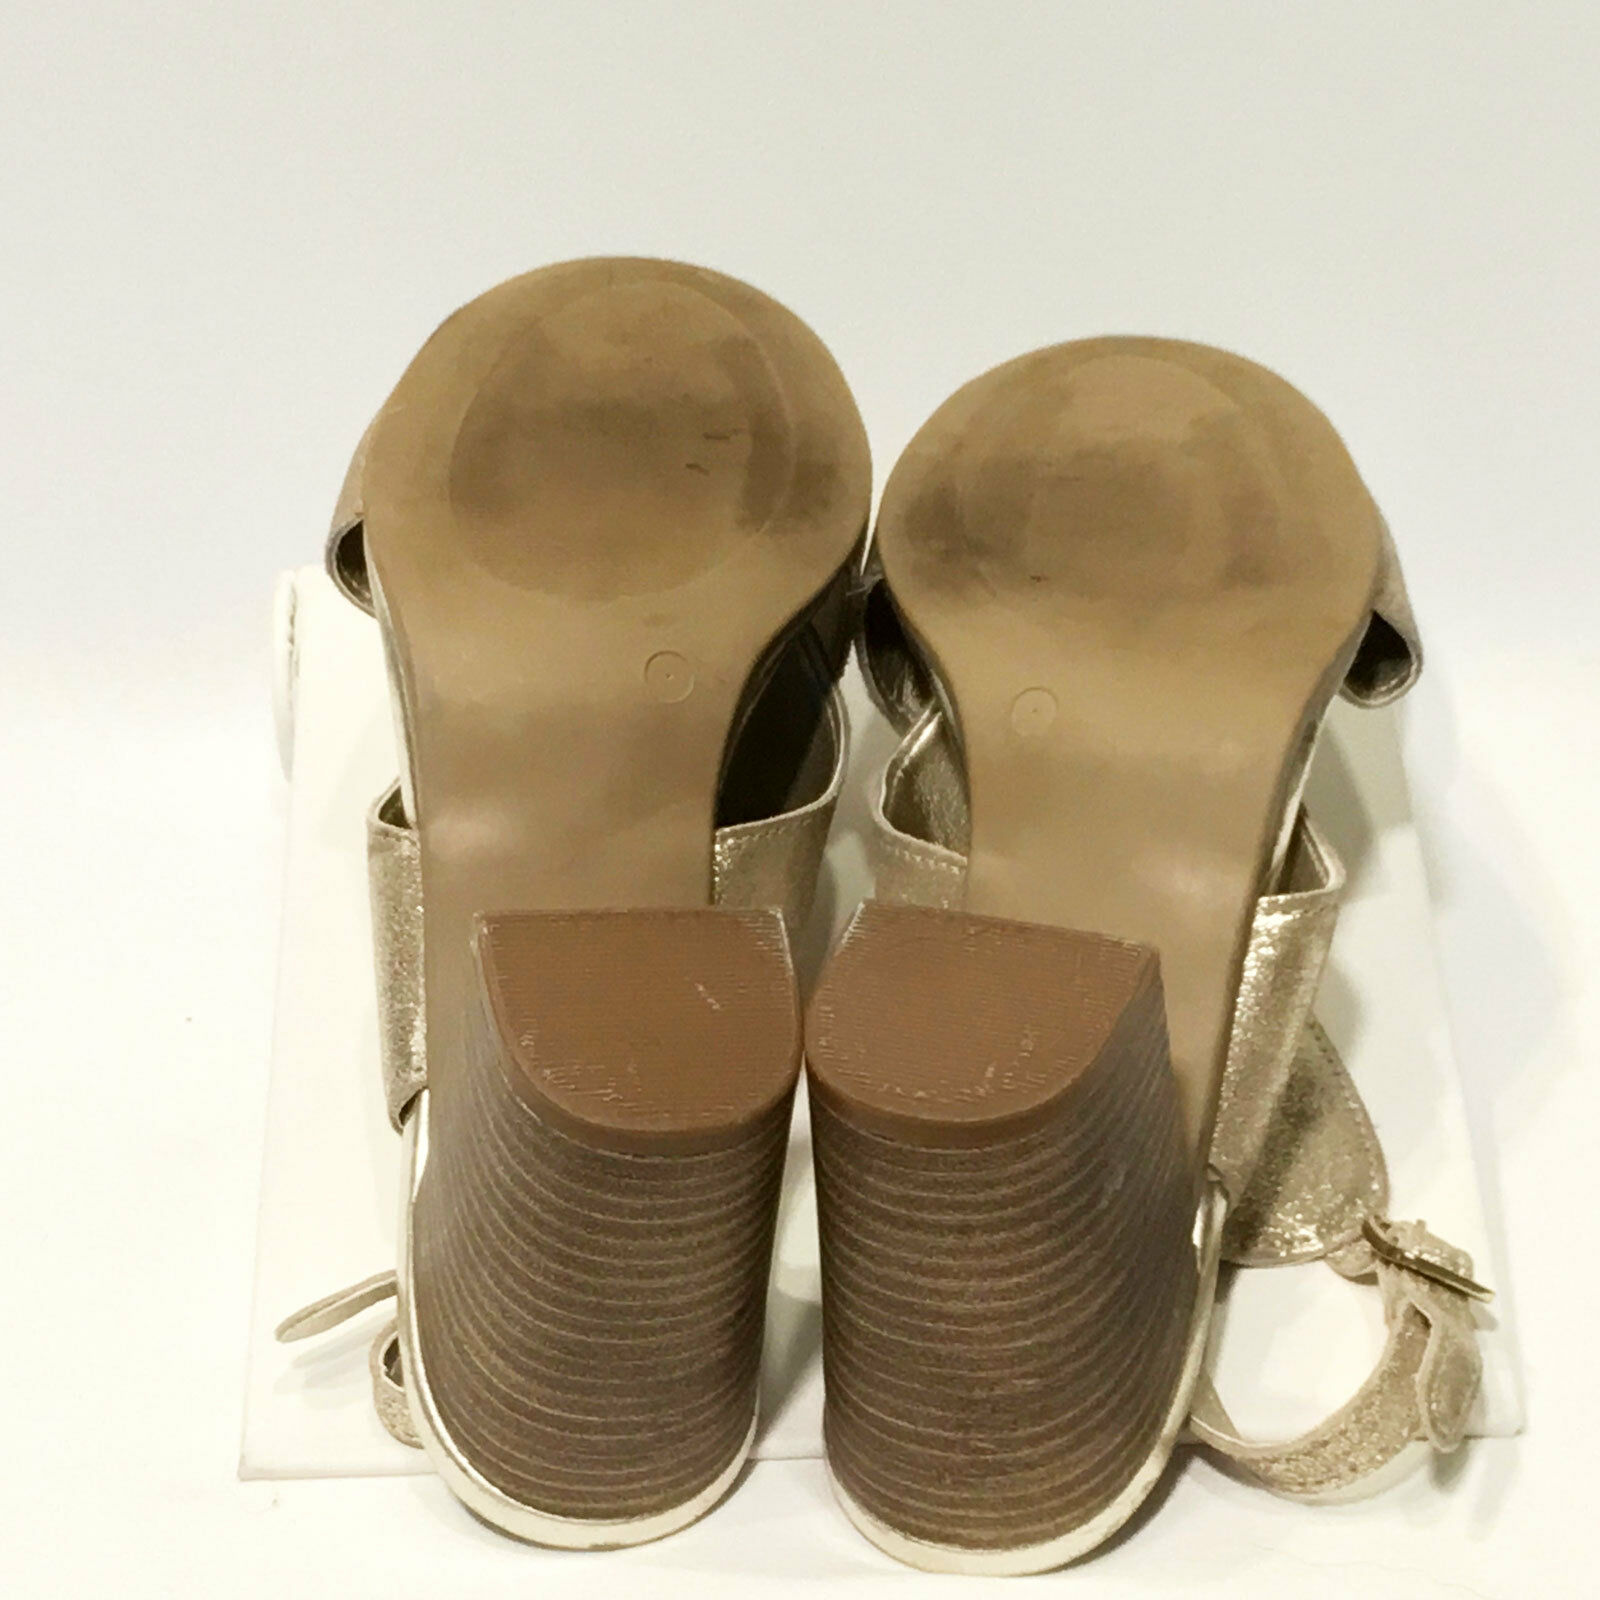 Anthropologie Lien.Do     gold Metallic Wrap Sandals – Size 7 M c9a8e8